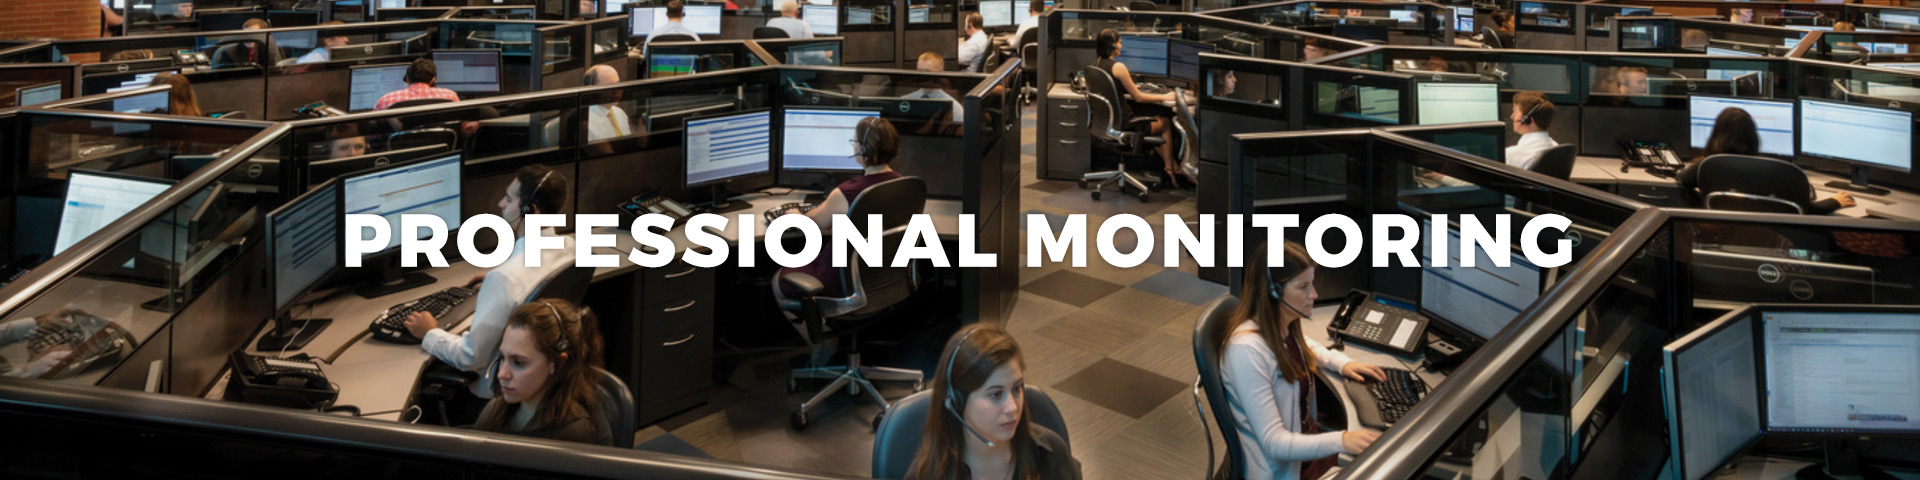 Professional Monitoring Call Center